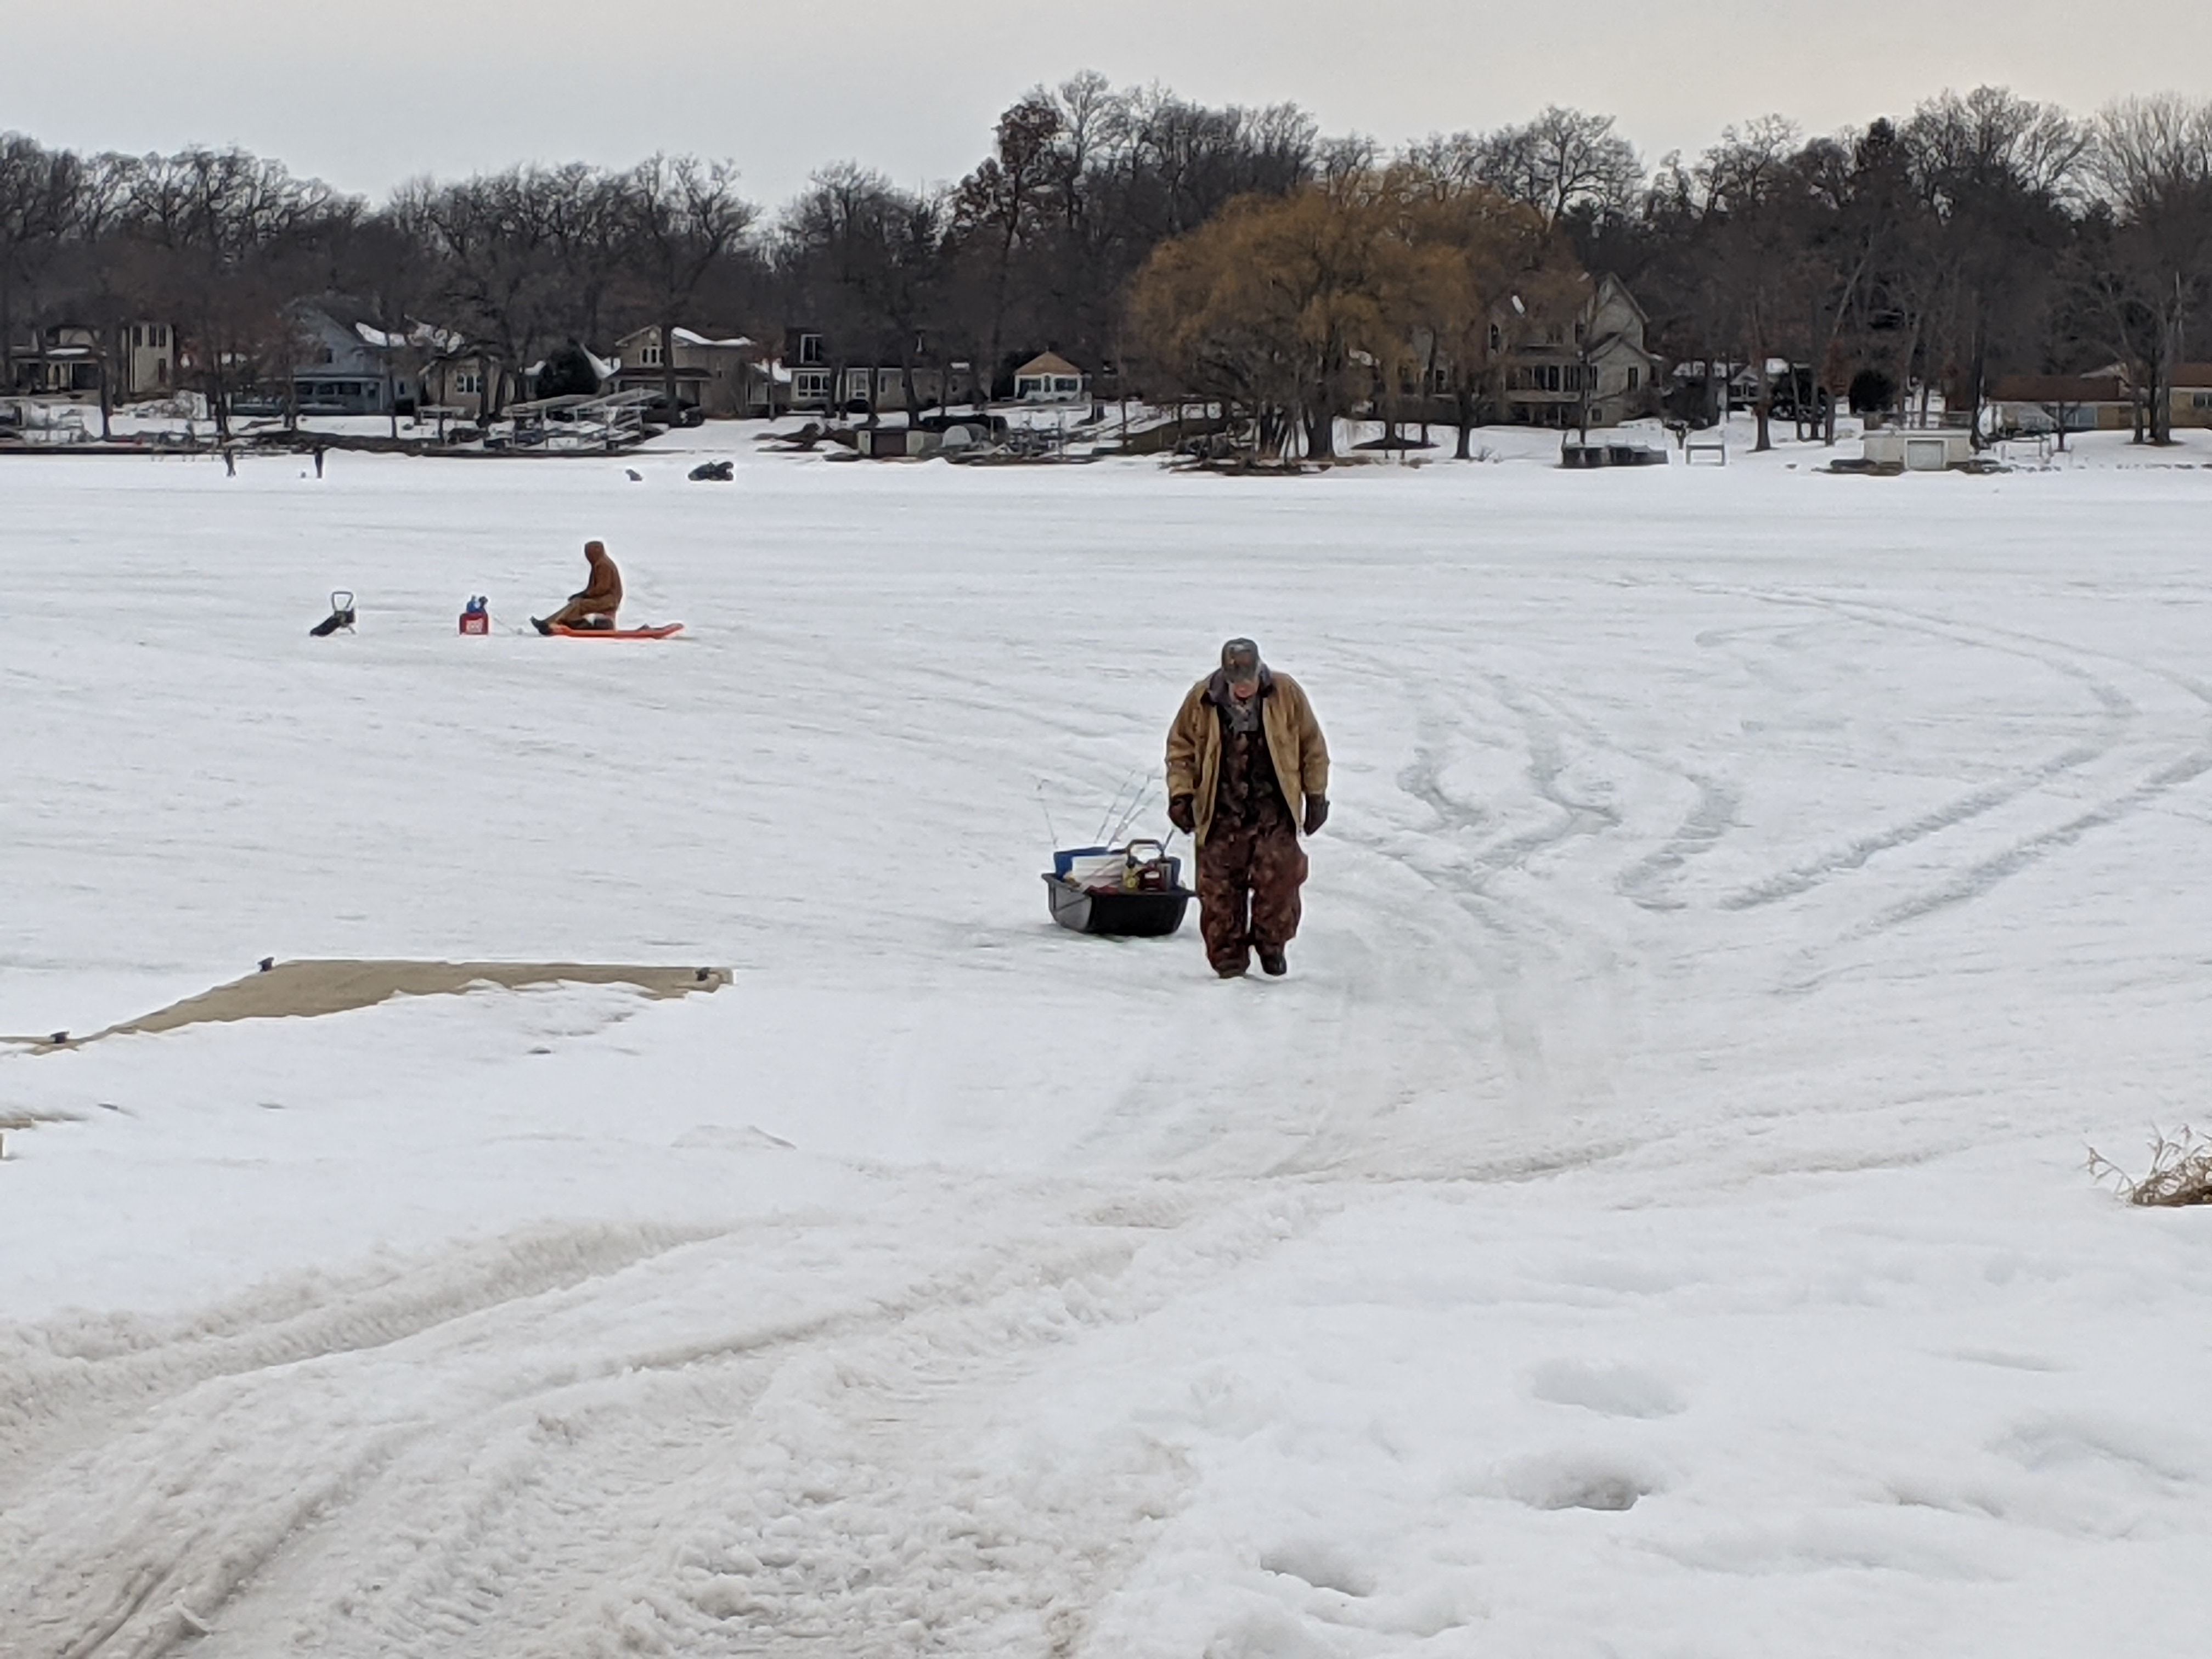 The weather has been warm enough to allow anglers to sit on a bucket outside on the ice, as these guys were Friday evening at Channel Lake; even with ice reaching depths of 18 inches in spots and weeks of heavy snow cover, significant winter fish kills are not expected around the Chicago area. Credit: Dale Bowman